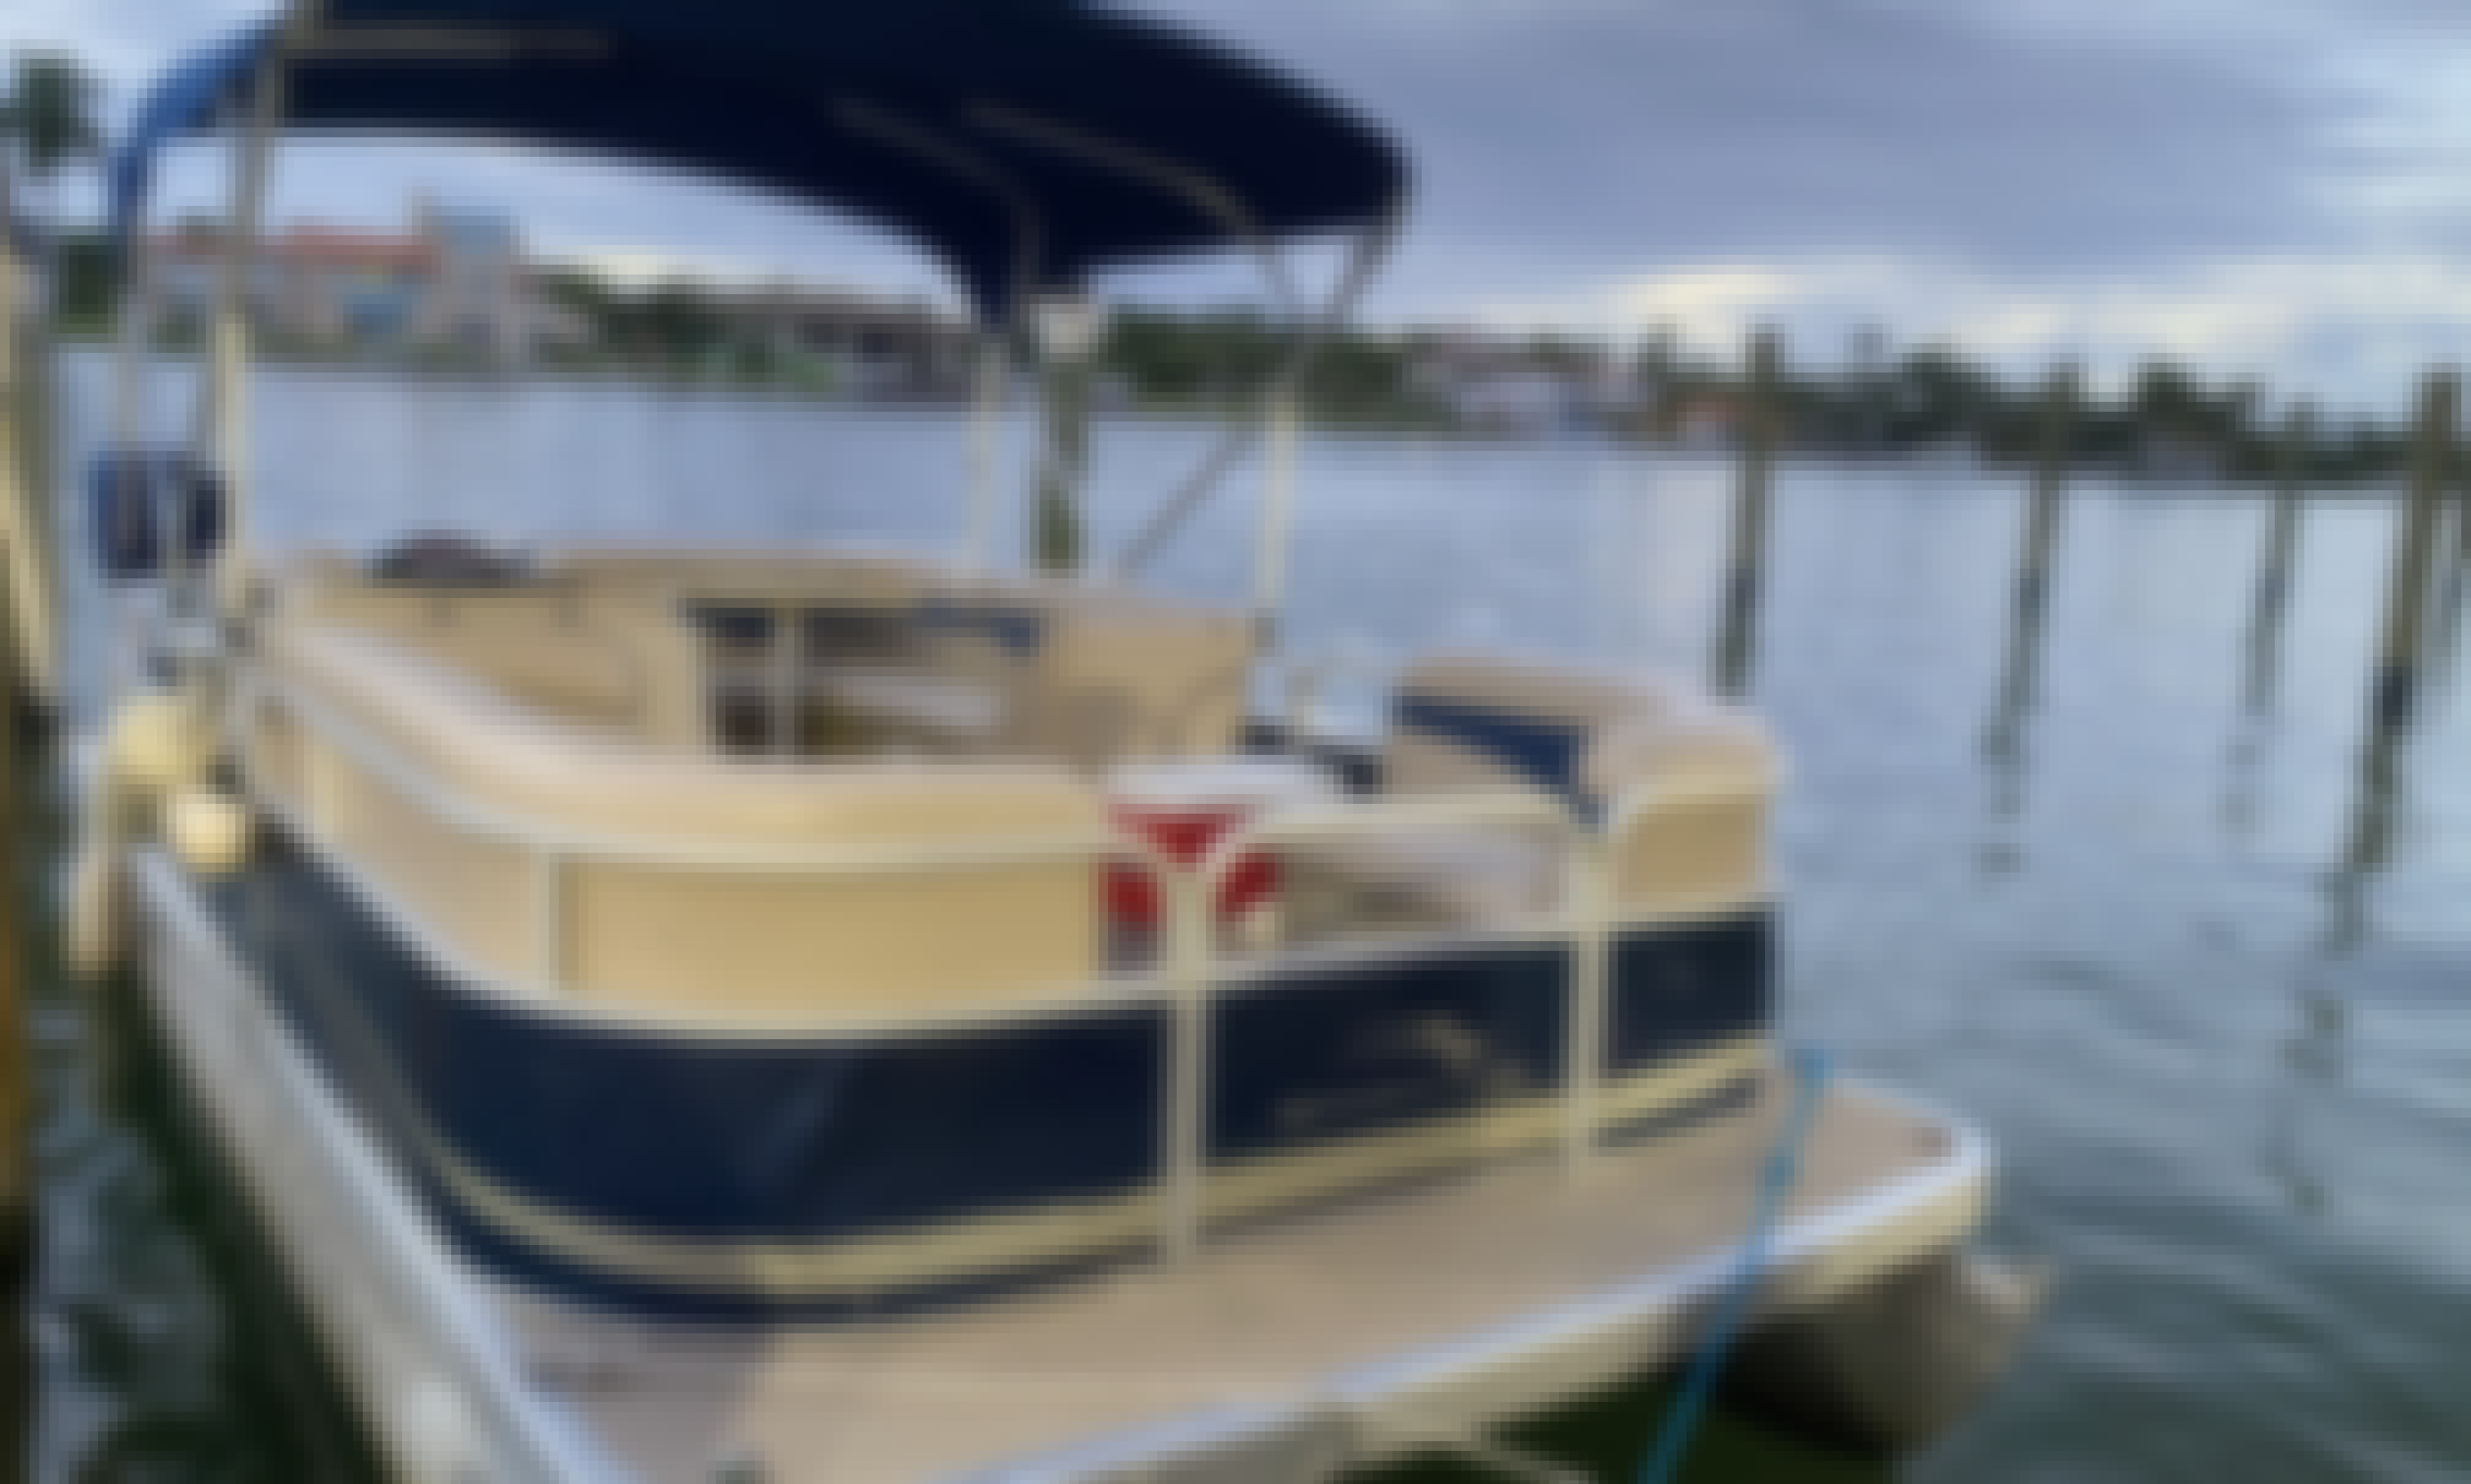 Awesome Bennington 20' Pontoon to Rent in Miami Beach! Bring your friends and family!